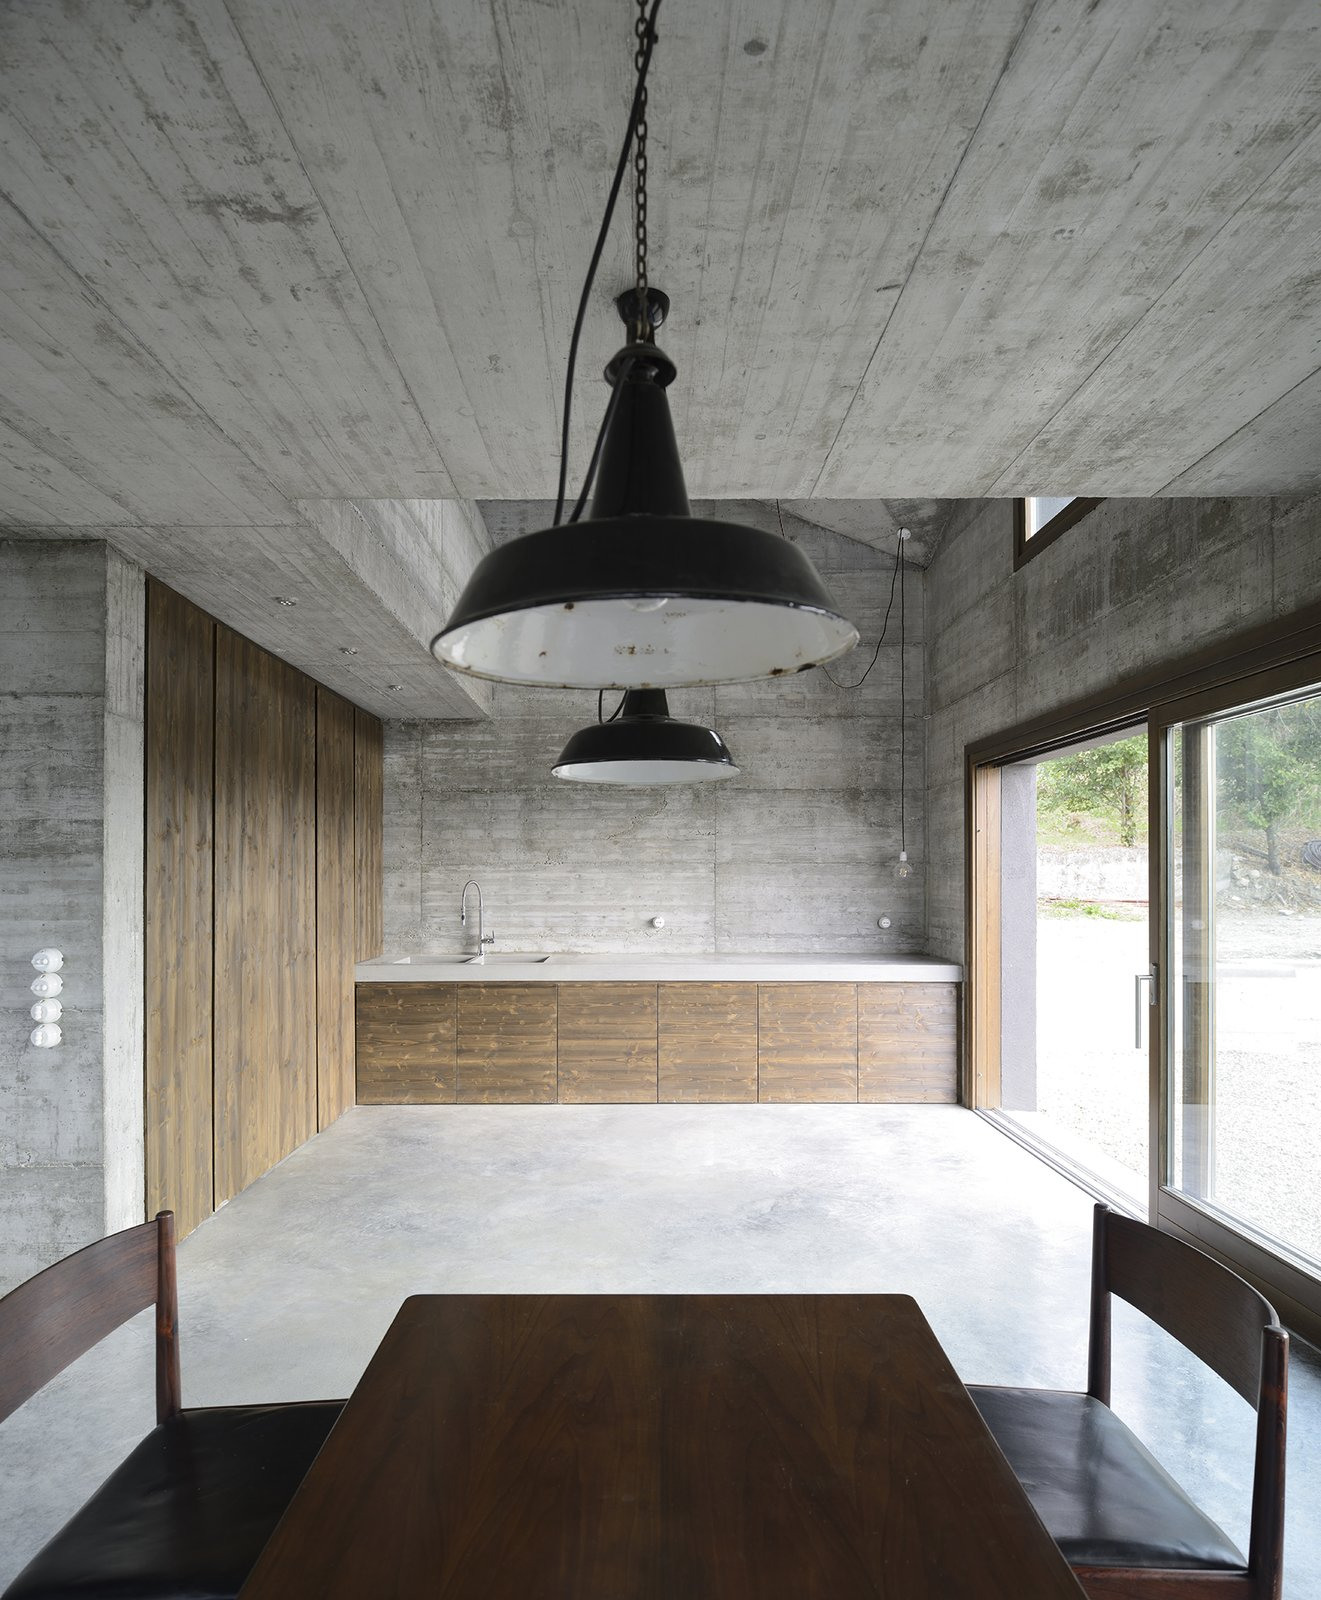 Tagged: Kitchen, Wood Counter, Concrete Counter, Concrete Floor, Table Lighting, Pendant Lighting, Ceiling Lighting, and Dishwasher.  HOUSE R by 35astudio